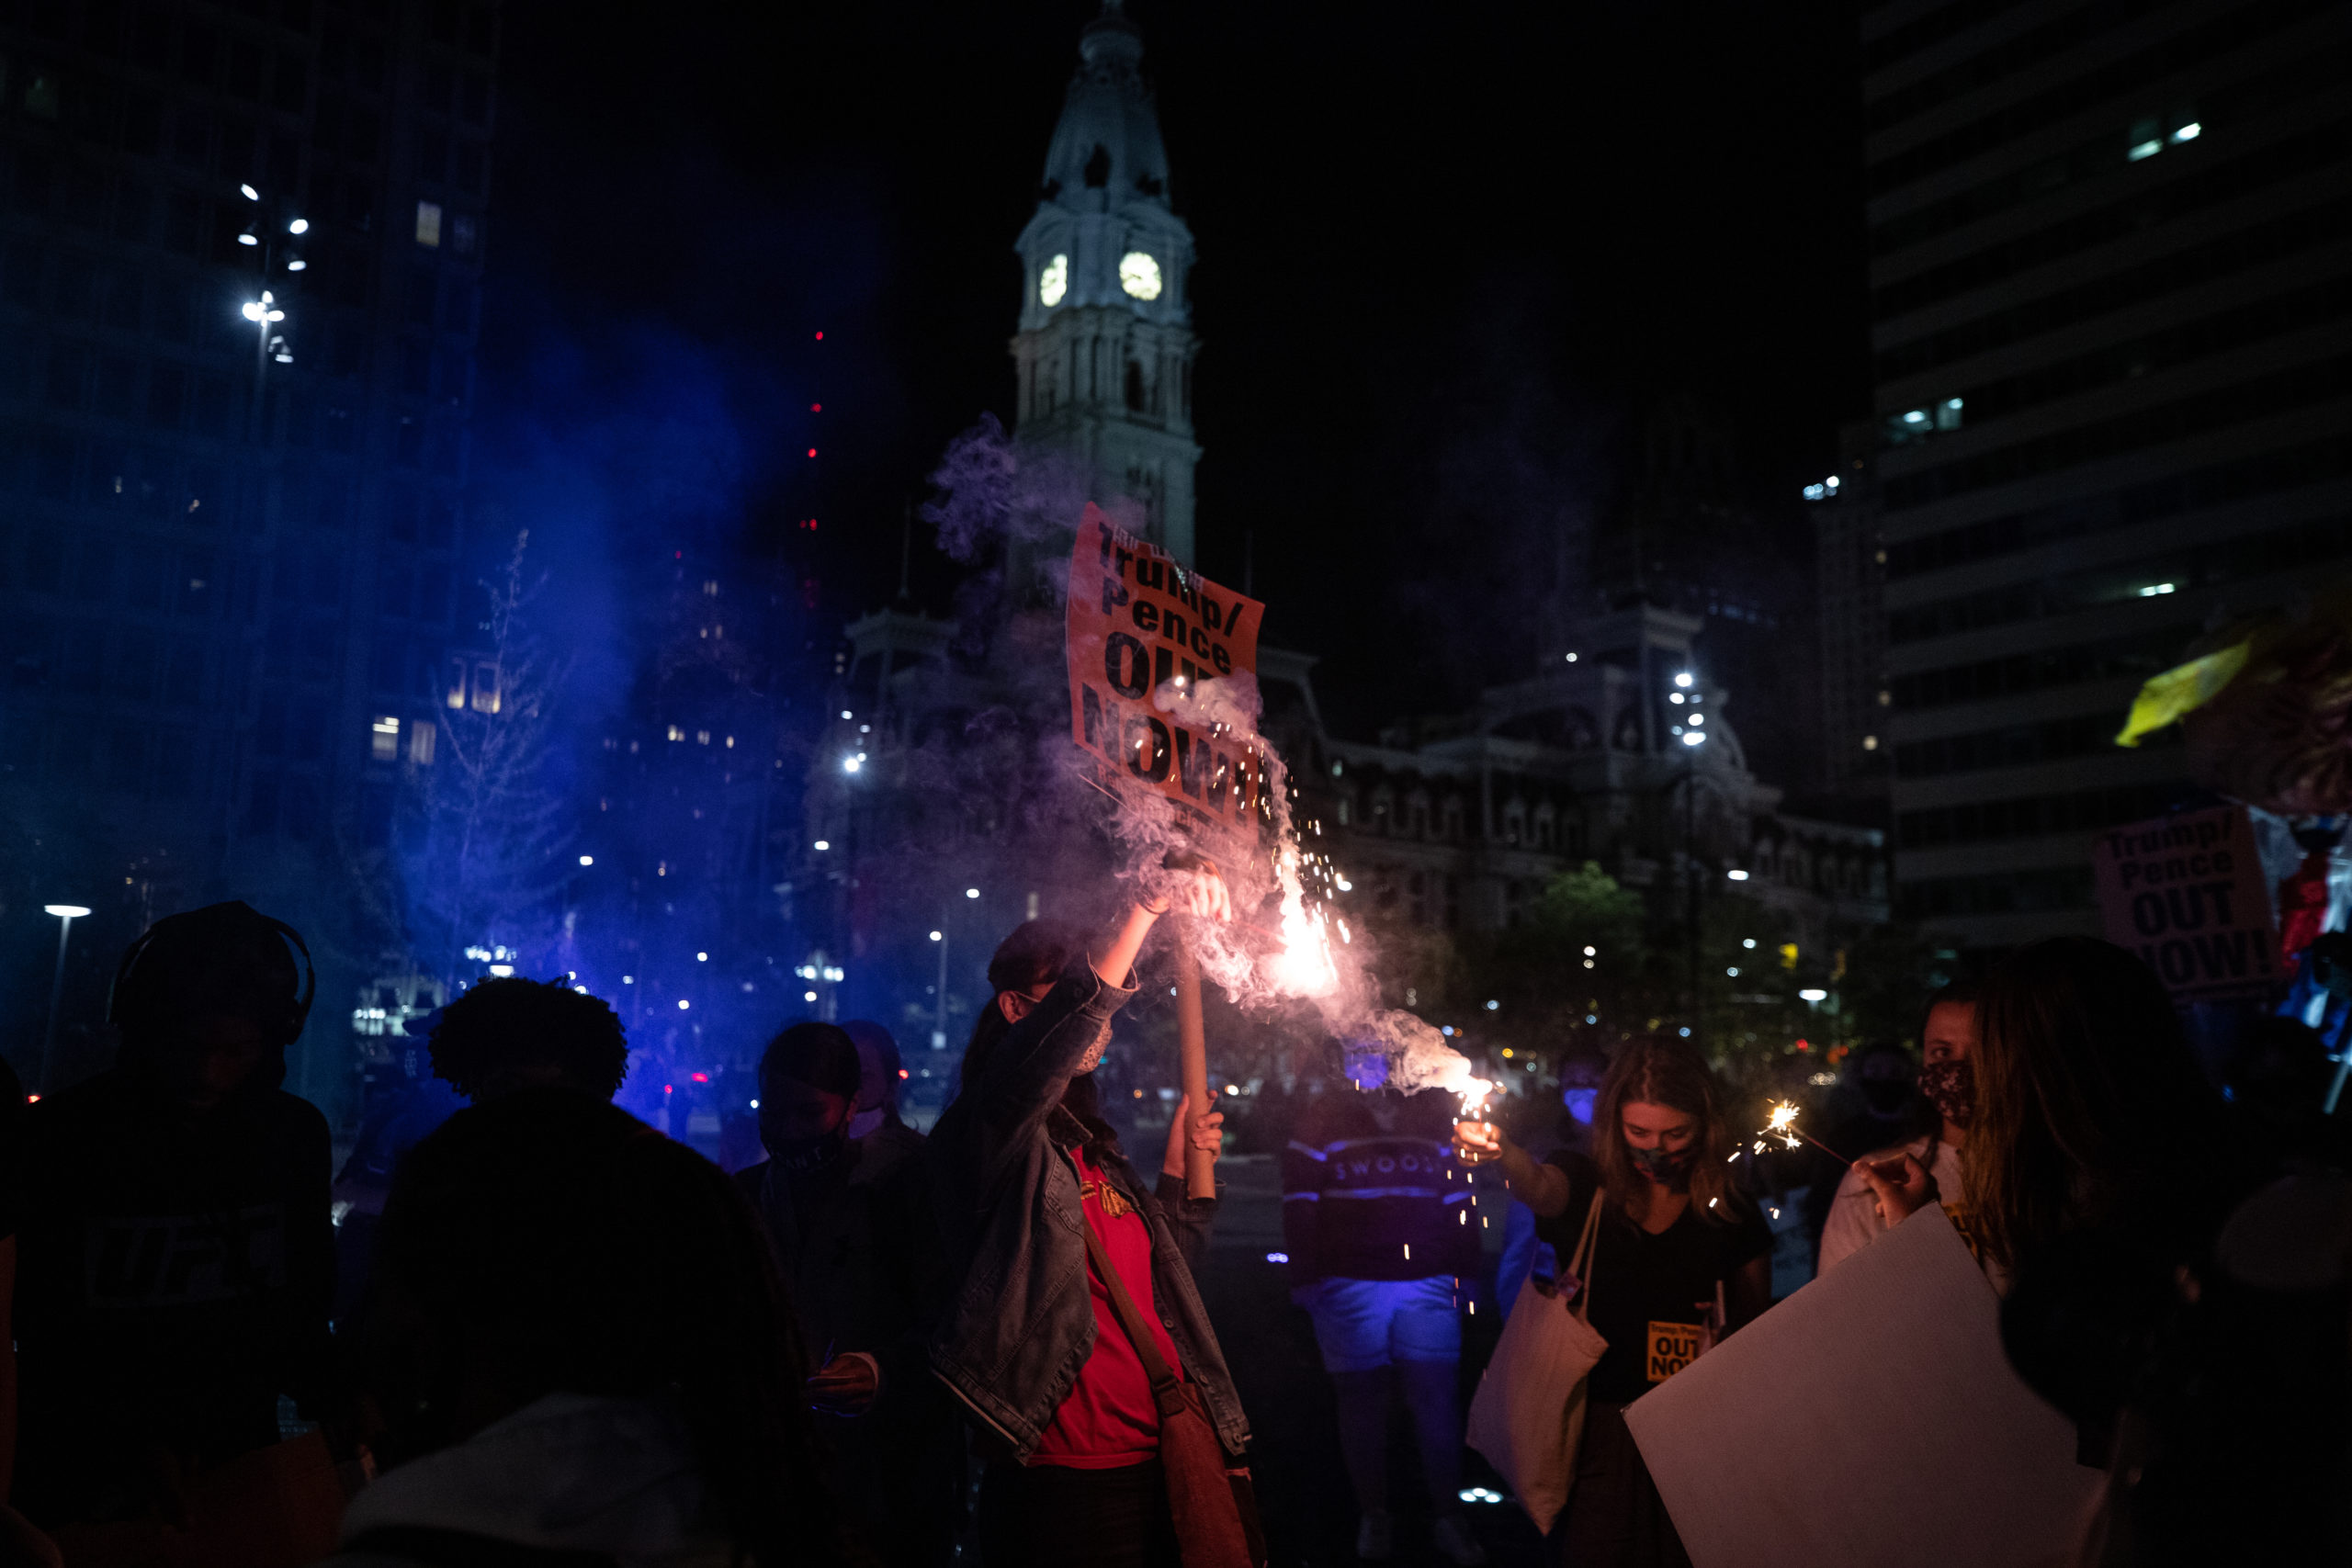 Protesters light sparklers near City Hall in Philadelphia, Pennsylvania on Sept. 15, 2020. (Photo: Kaylee Greenlee / DCNF)